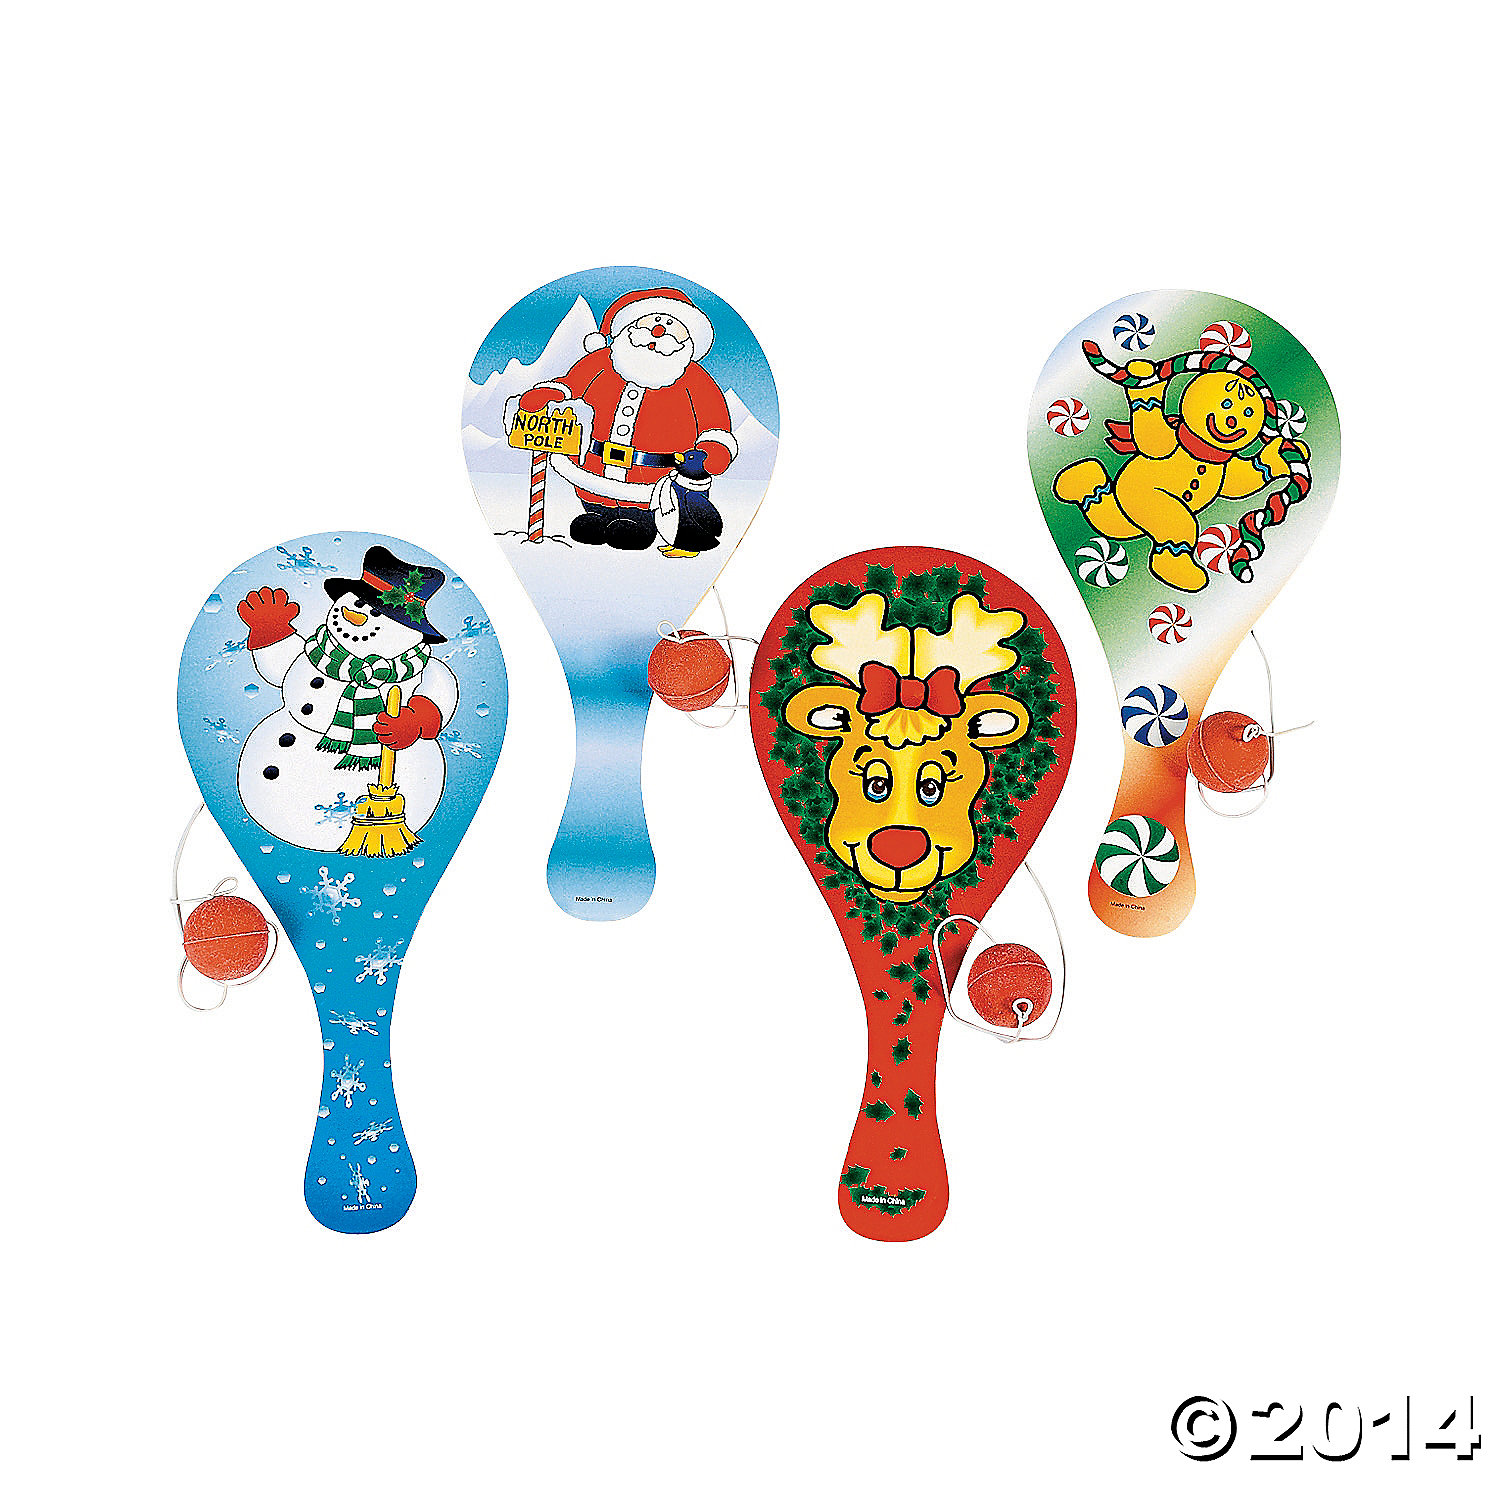 Wooden Holiday Paddleball Games